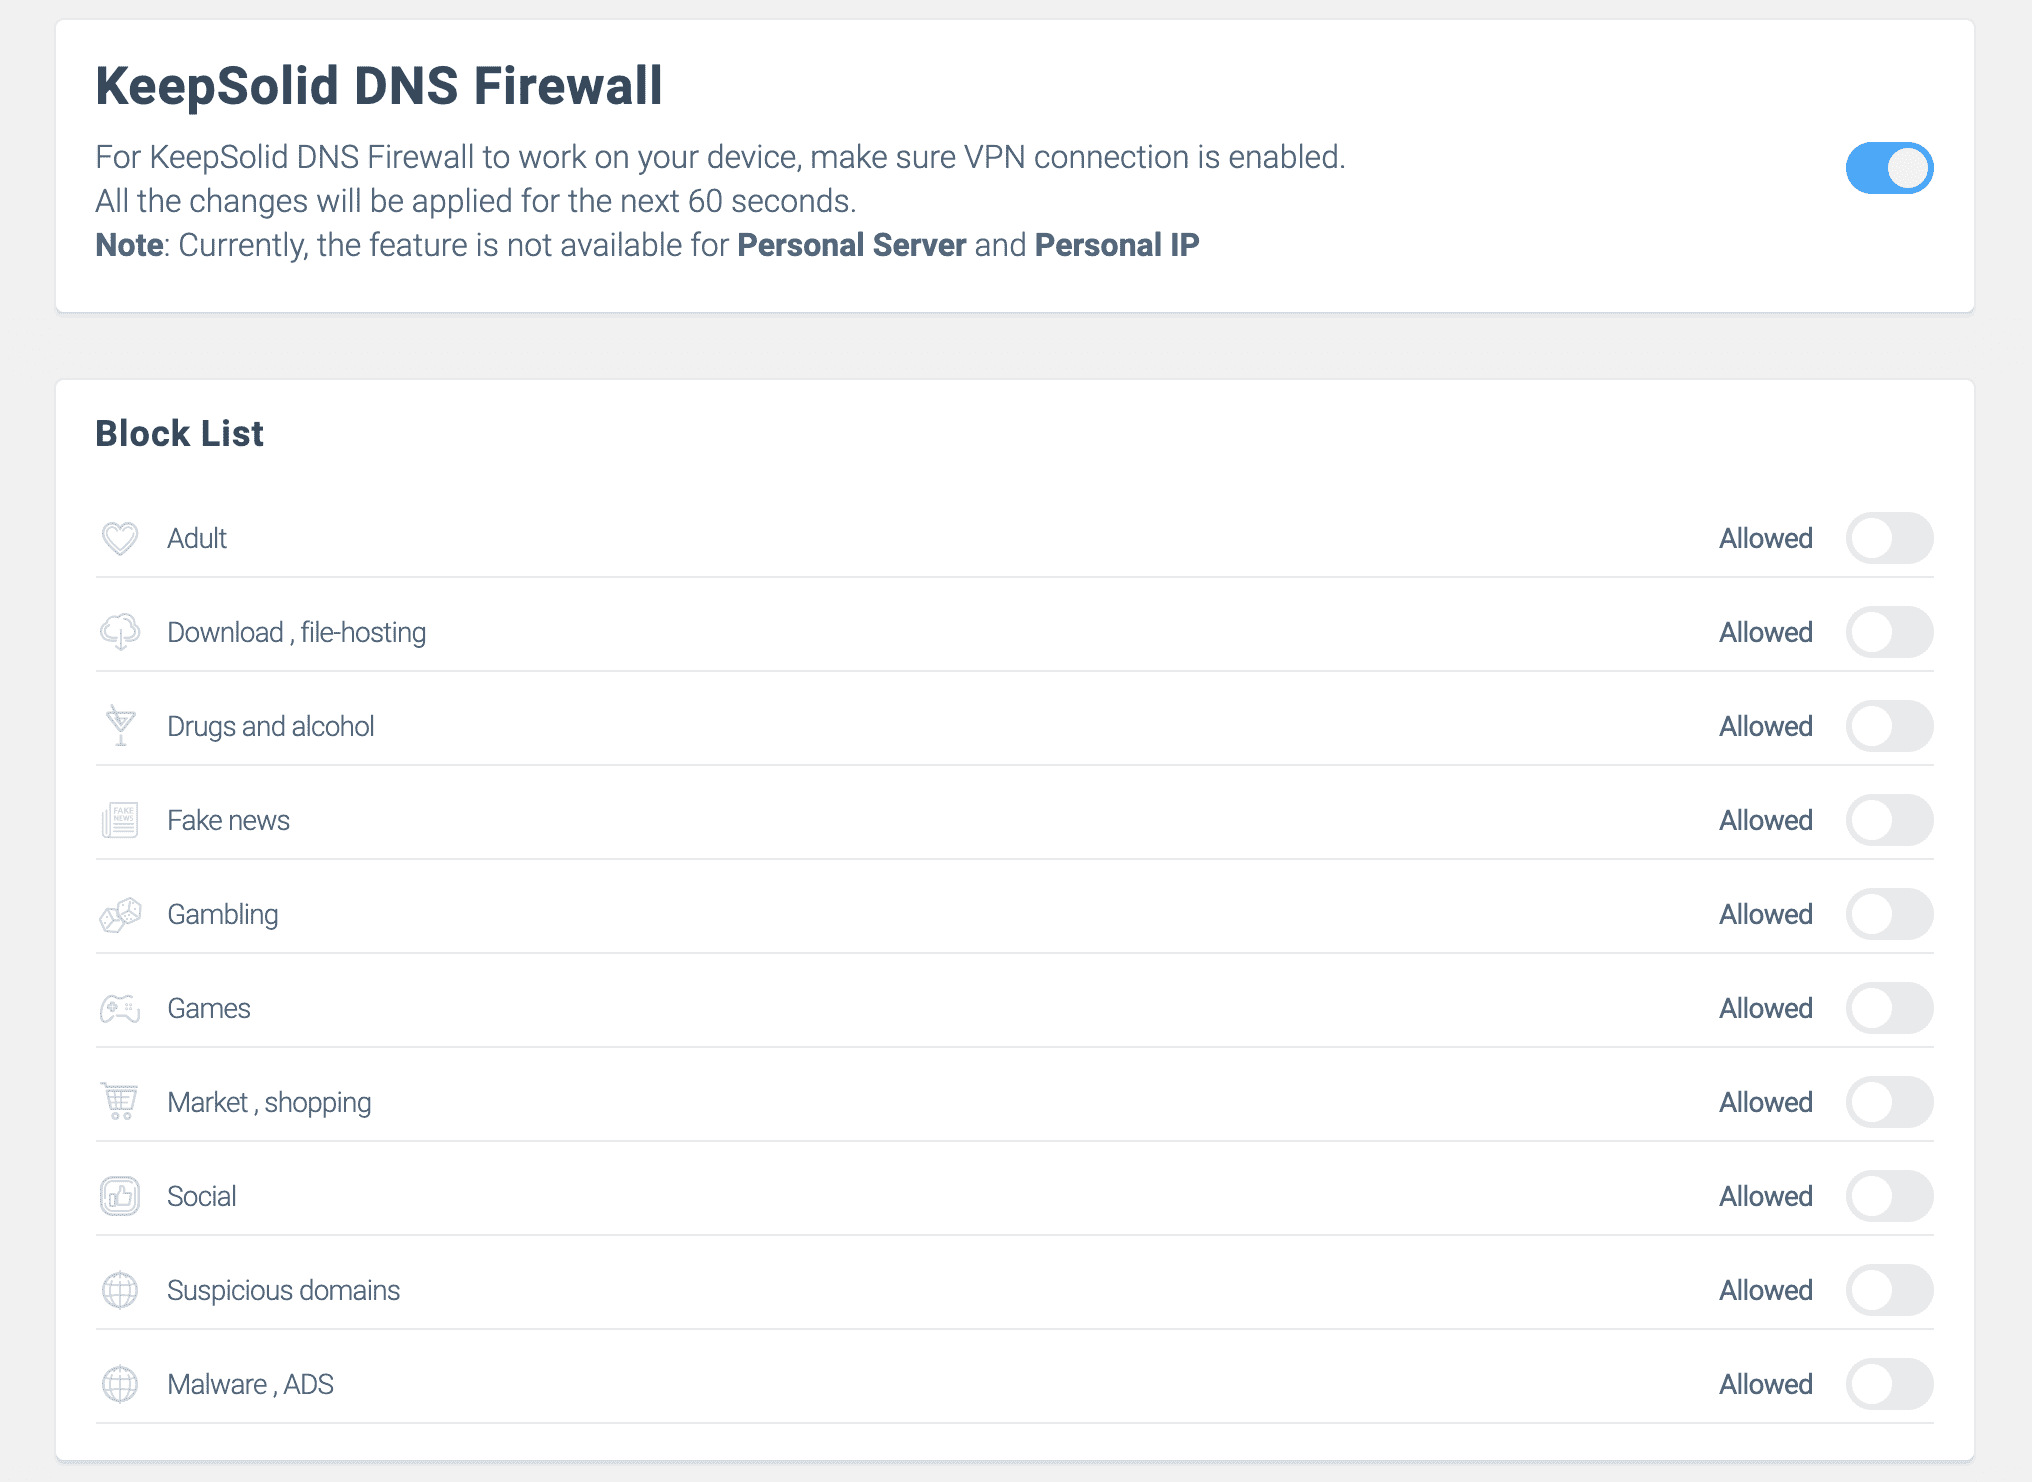 KeepSolid DNS Firewall settings